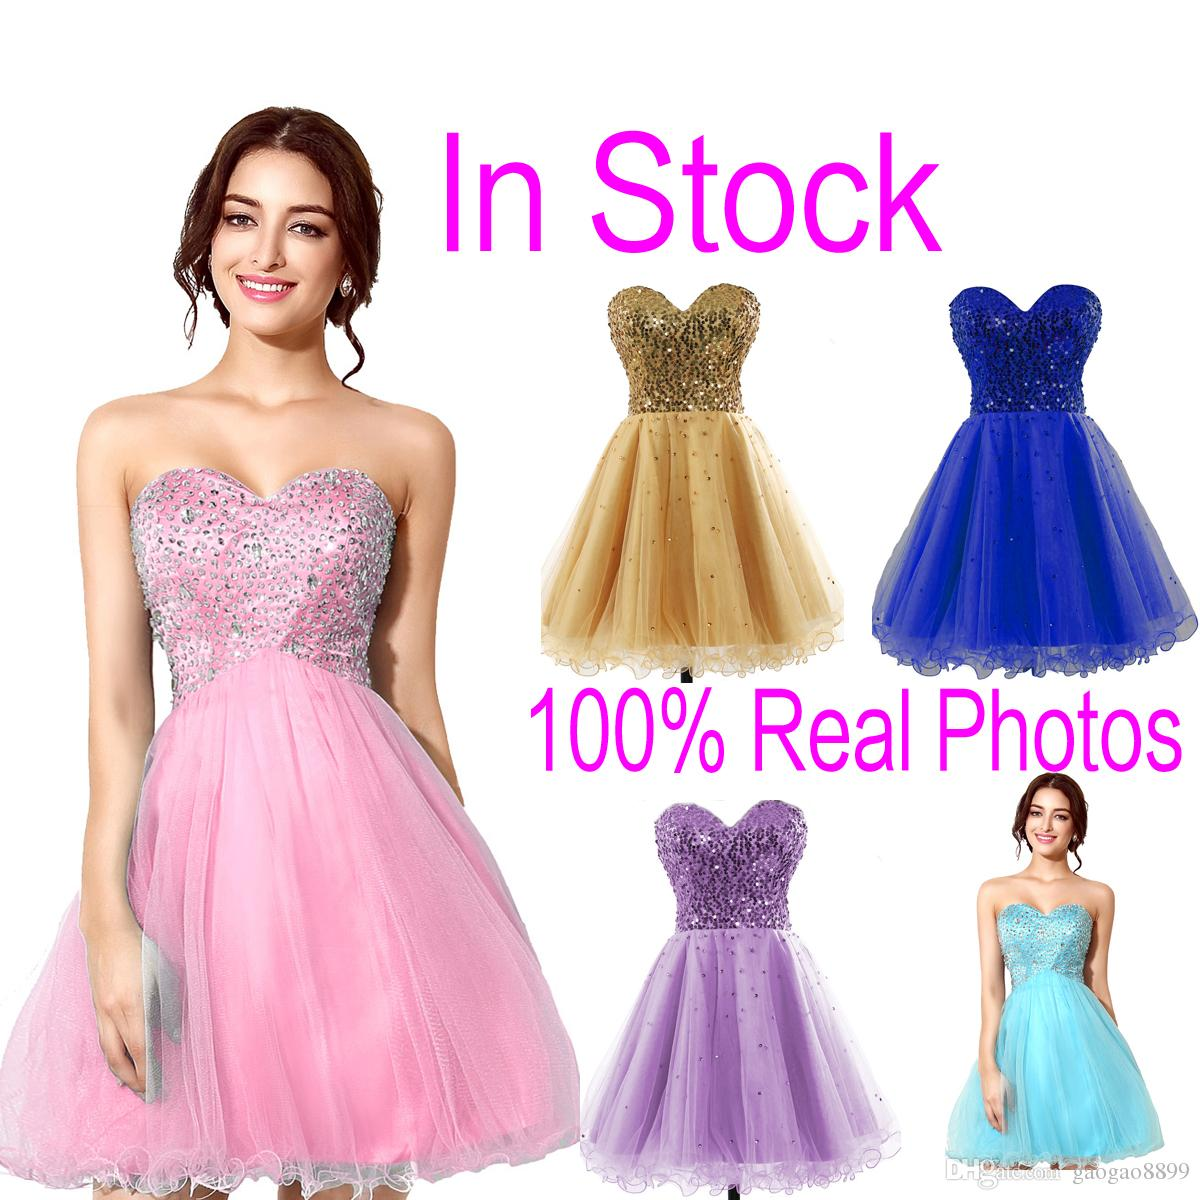 En Stock Pink Tulle Mini Crystal Homecoming Dresses Beads Lilac Sky Royal Blue Short Prom Party Graduación Vestidos 2019 Cheap Real Image Hot